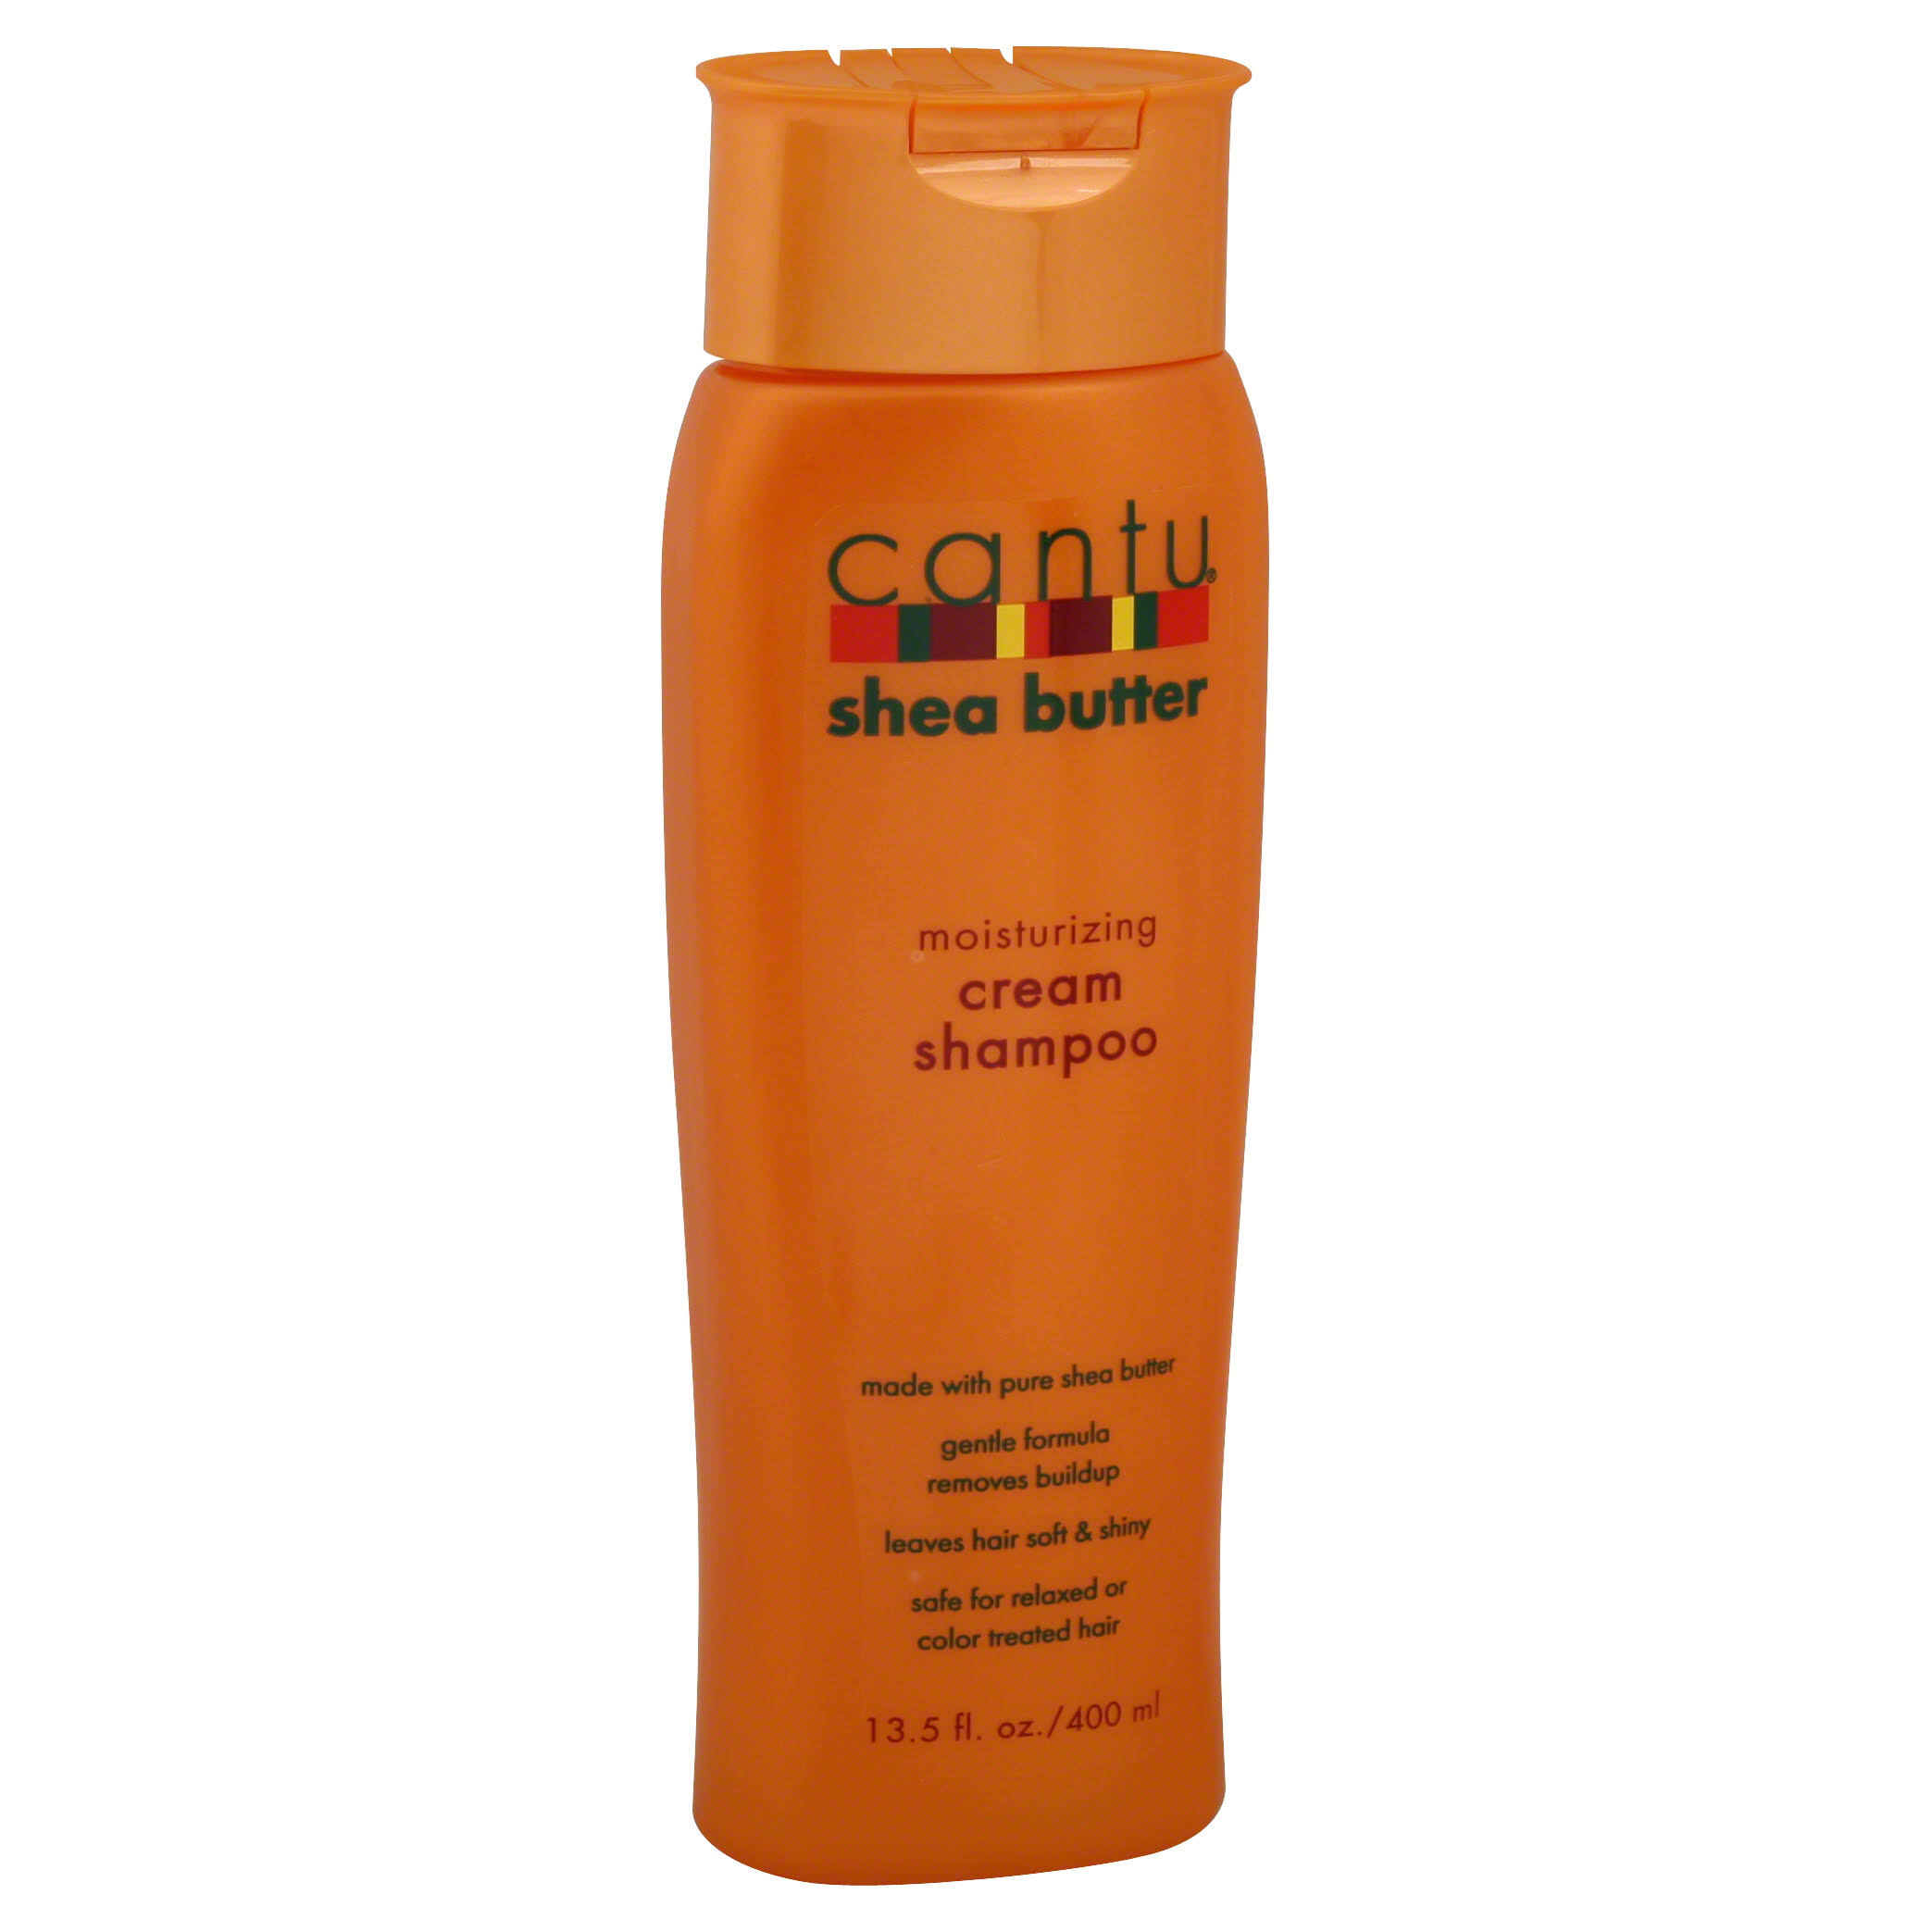 Cantu Shea Butter Cream Shampoo - 400ml